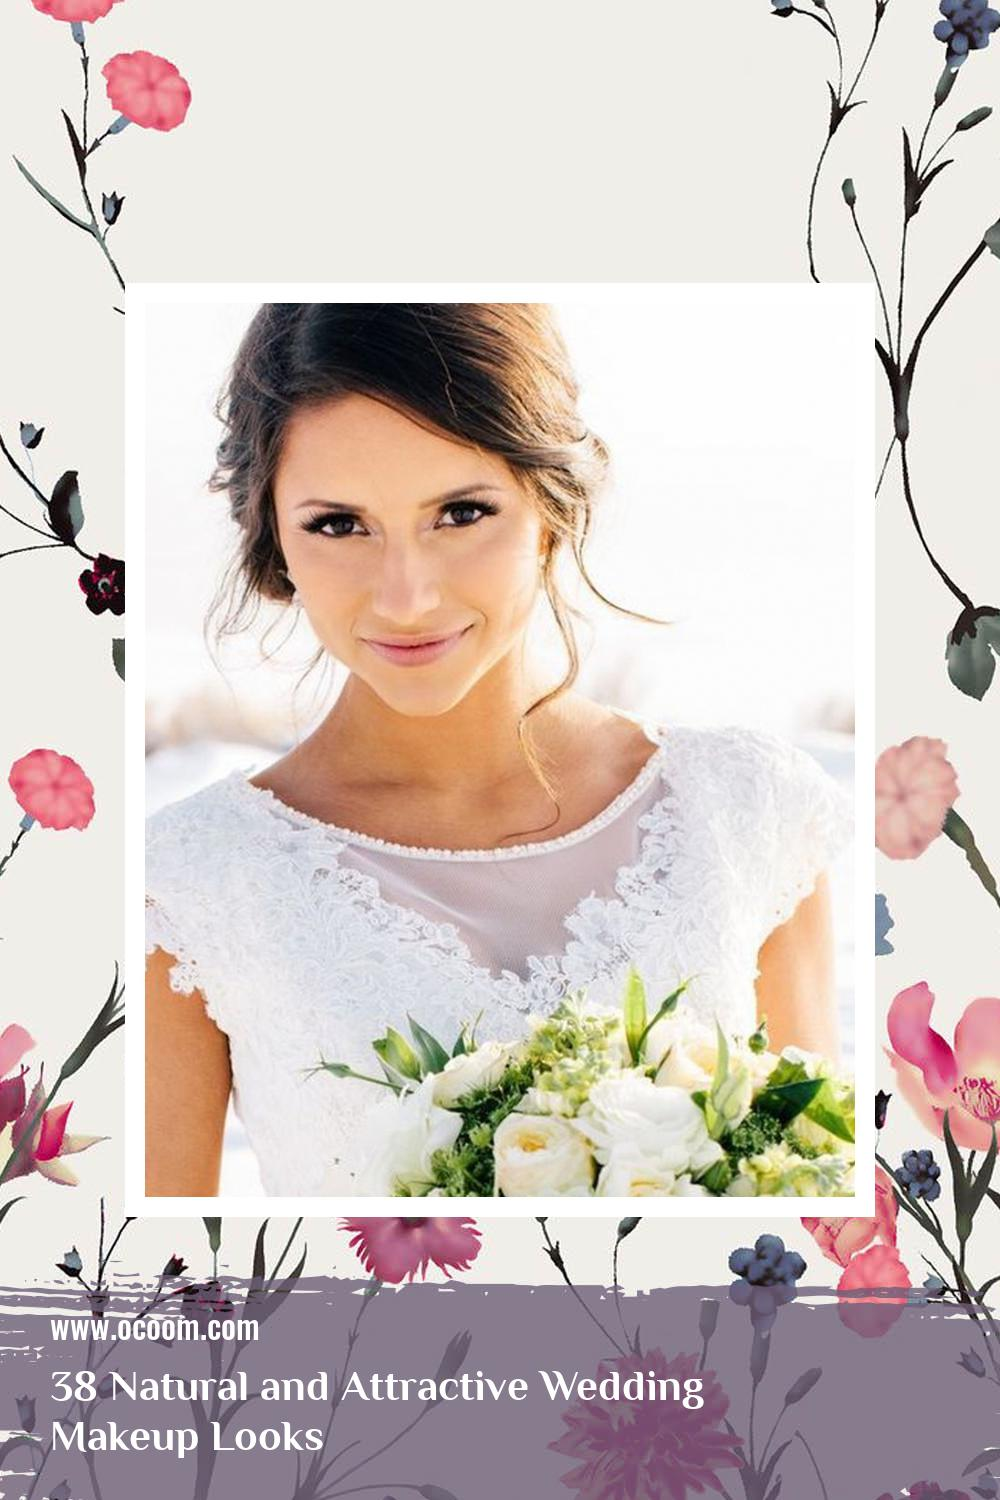 38 Natural and Attractive Wedding Makeup Looks 19